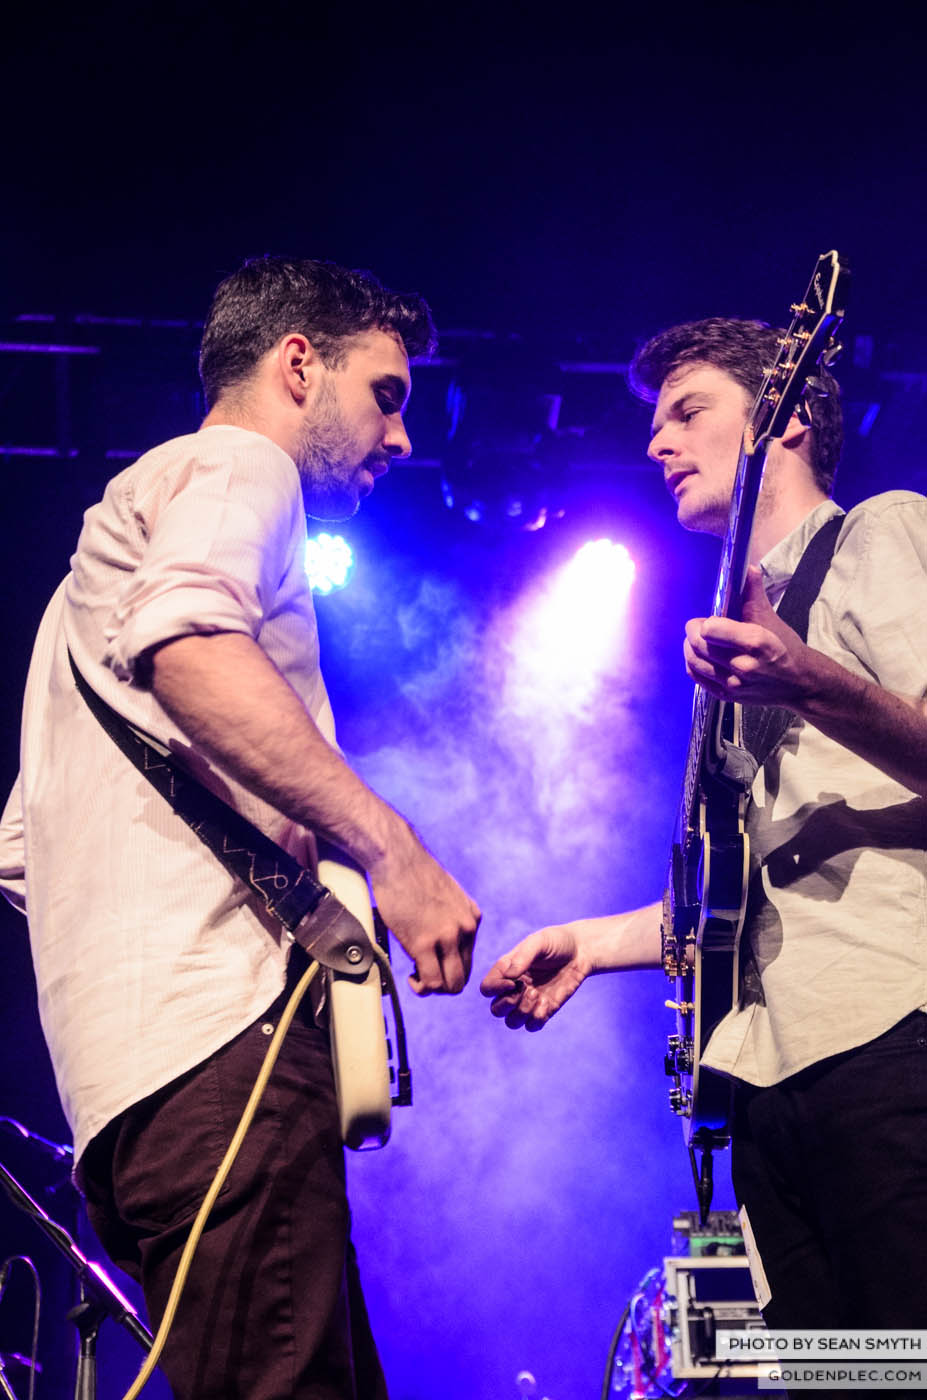 enemies-at-the-olympia-theatre-by-sean-smyth-30-10-14-9-of-17